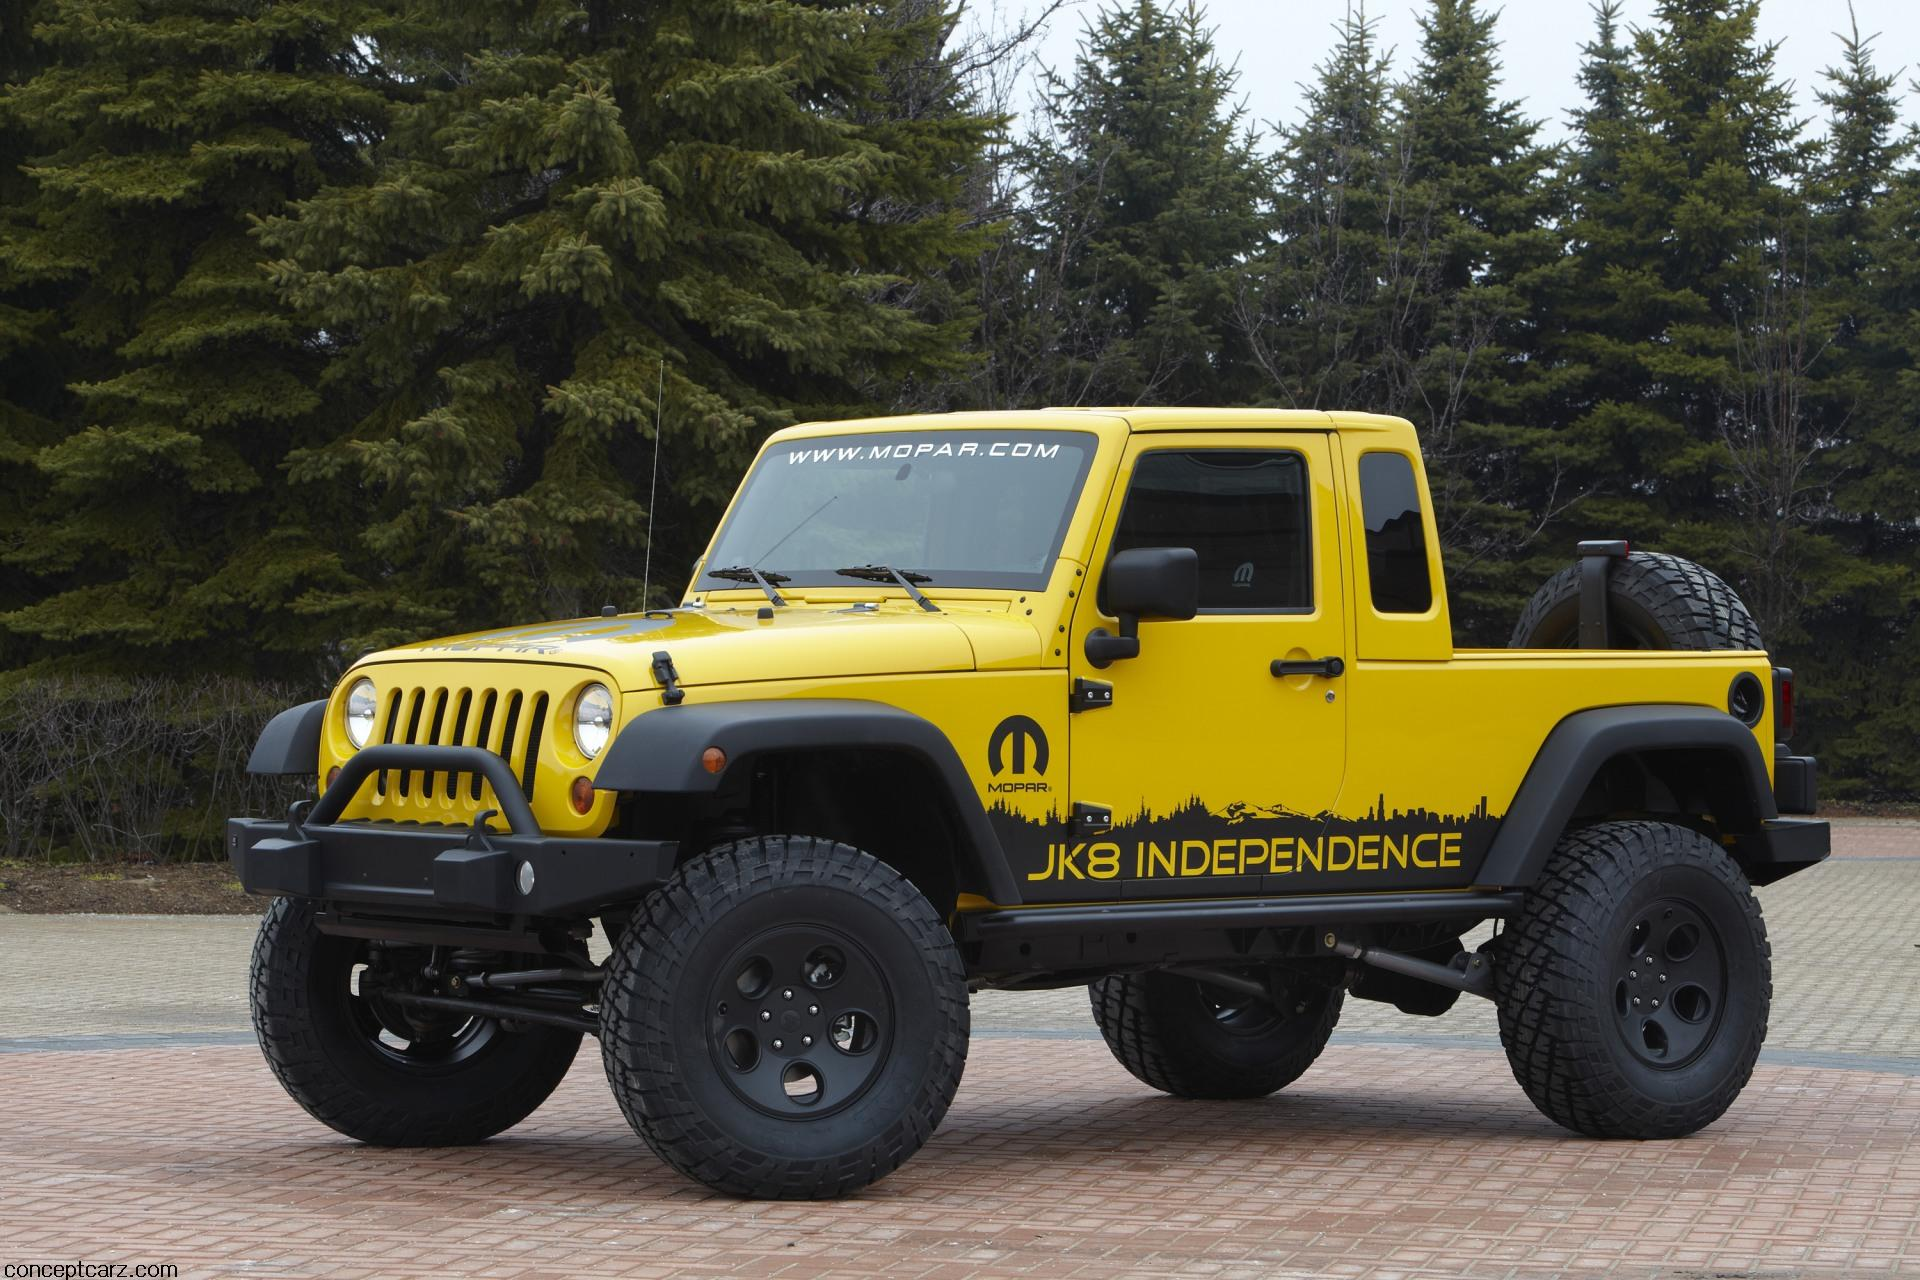 Jeep Brute Price >> 2011 Jeep JK-8 Independence News and Information - conceptcarz.com